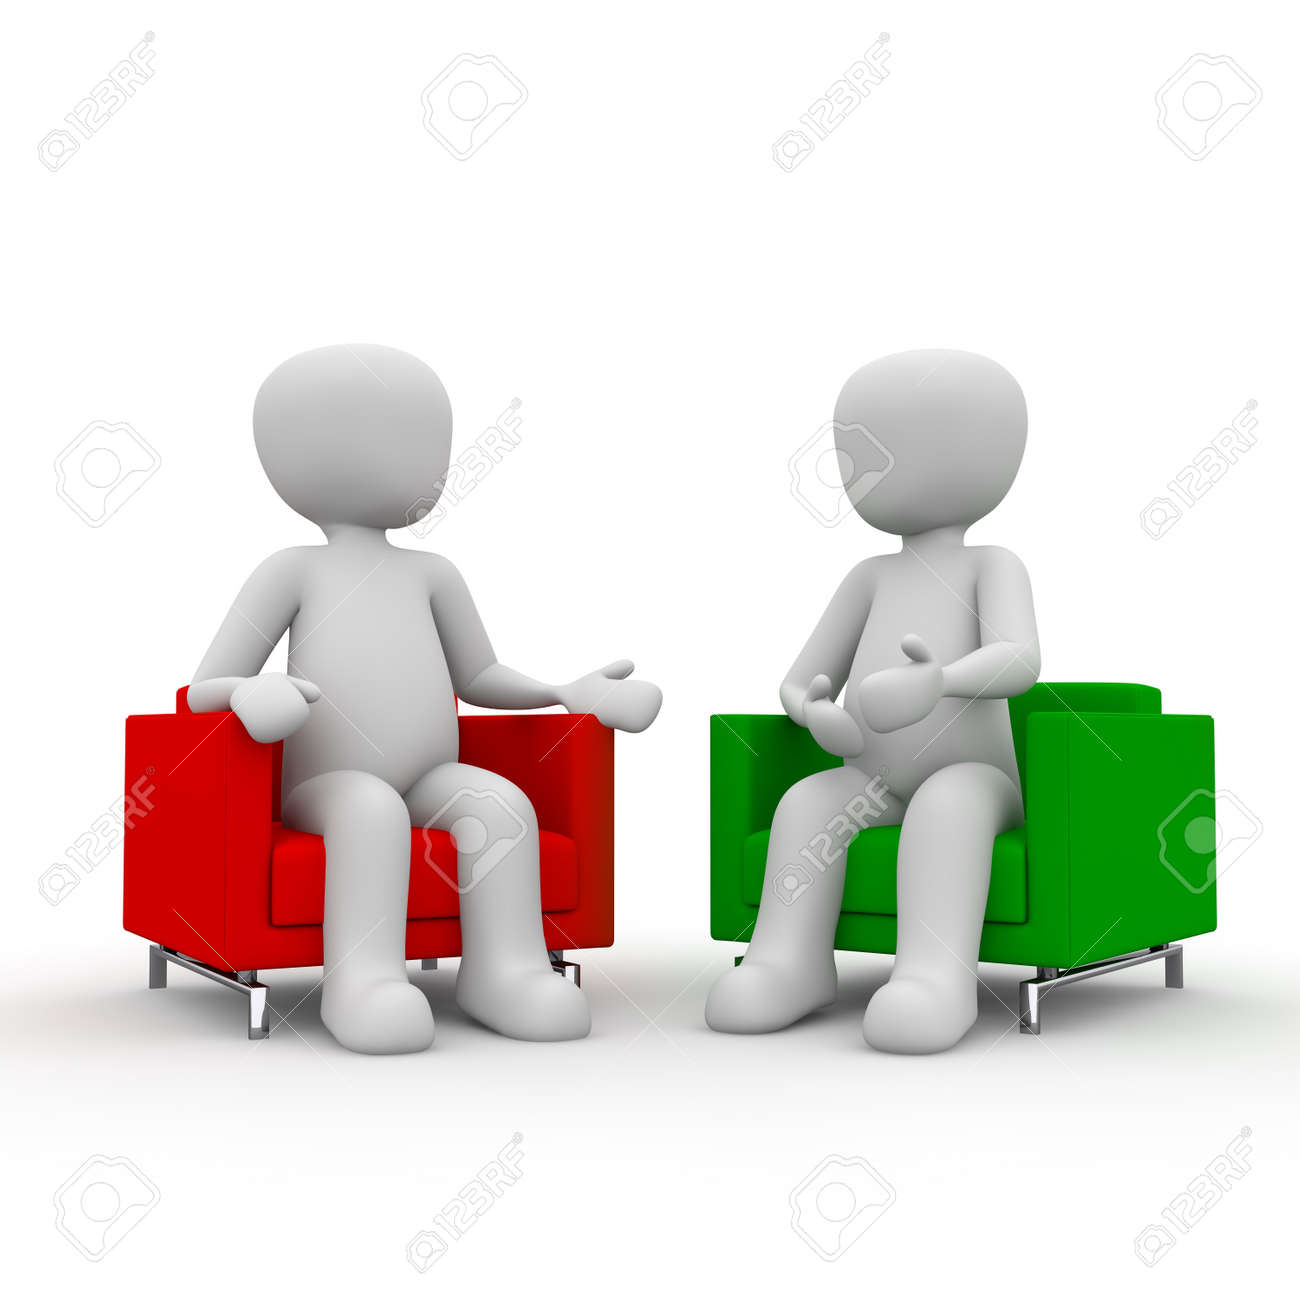 Two Characters Are Talking In The Living Room Of The Right Characters.  Stock Photo, Picture And Royalty Free Image. Image 20170459.